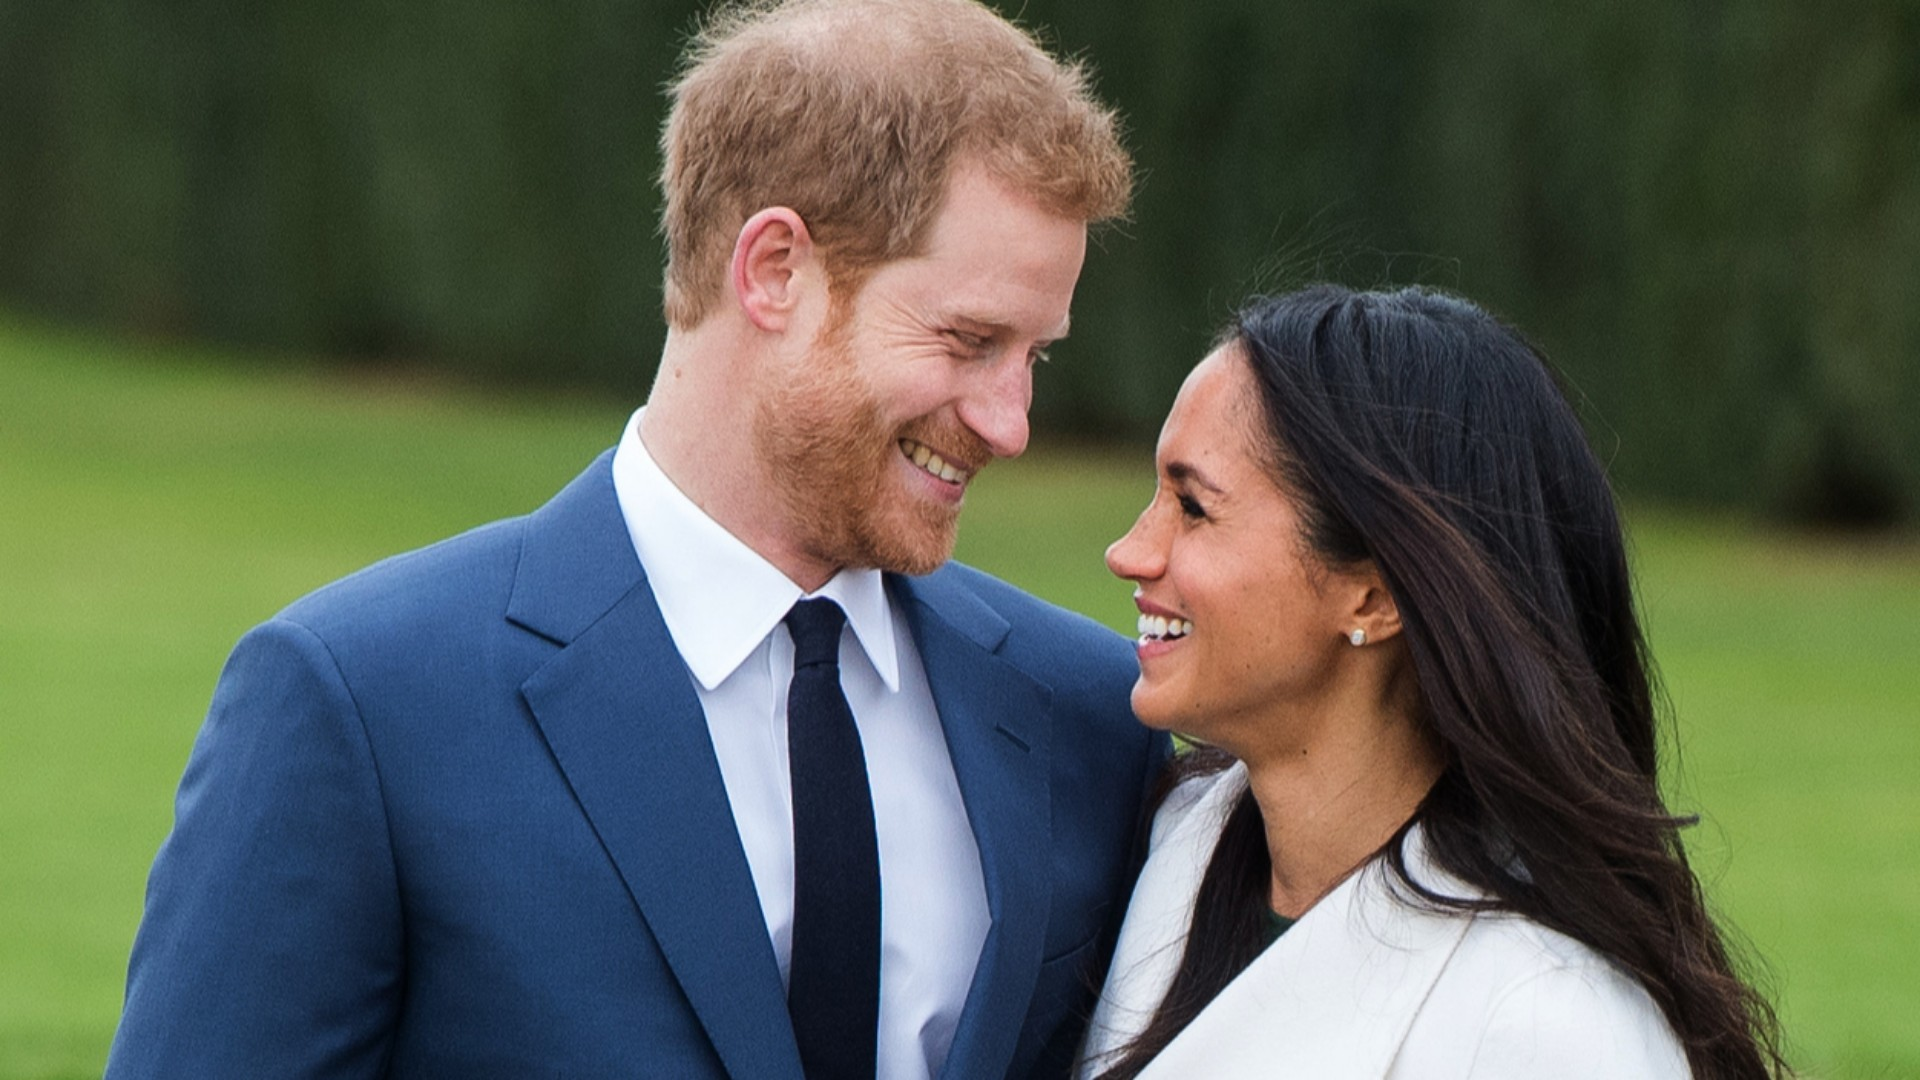 The Most Romantic Photos Of Meghan Markle Prince Harry Sheknows Images, Photos, Reviews